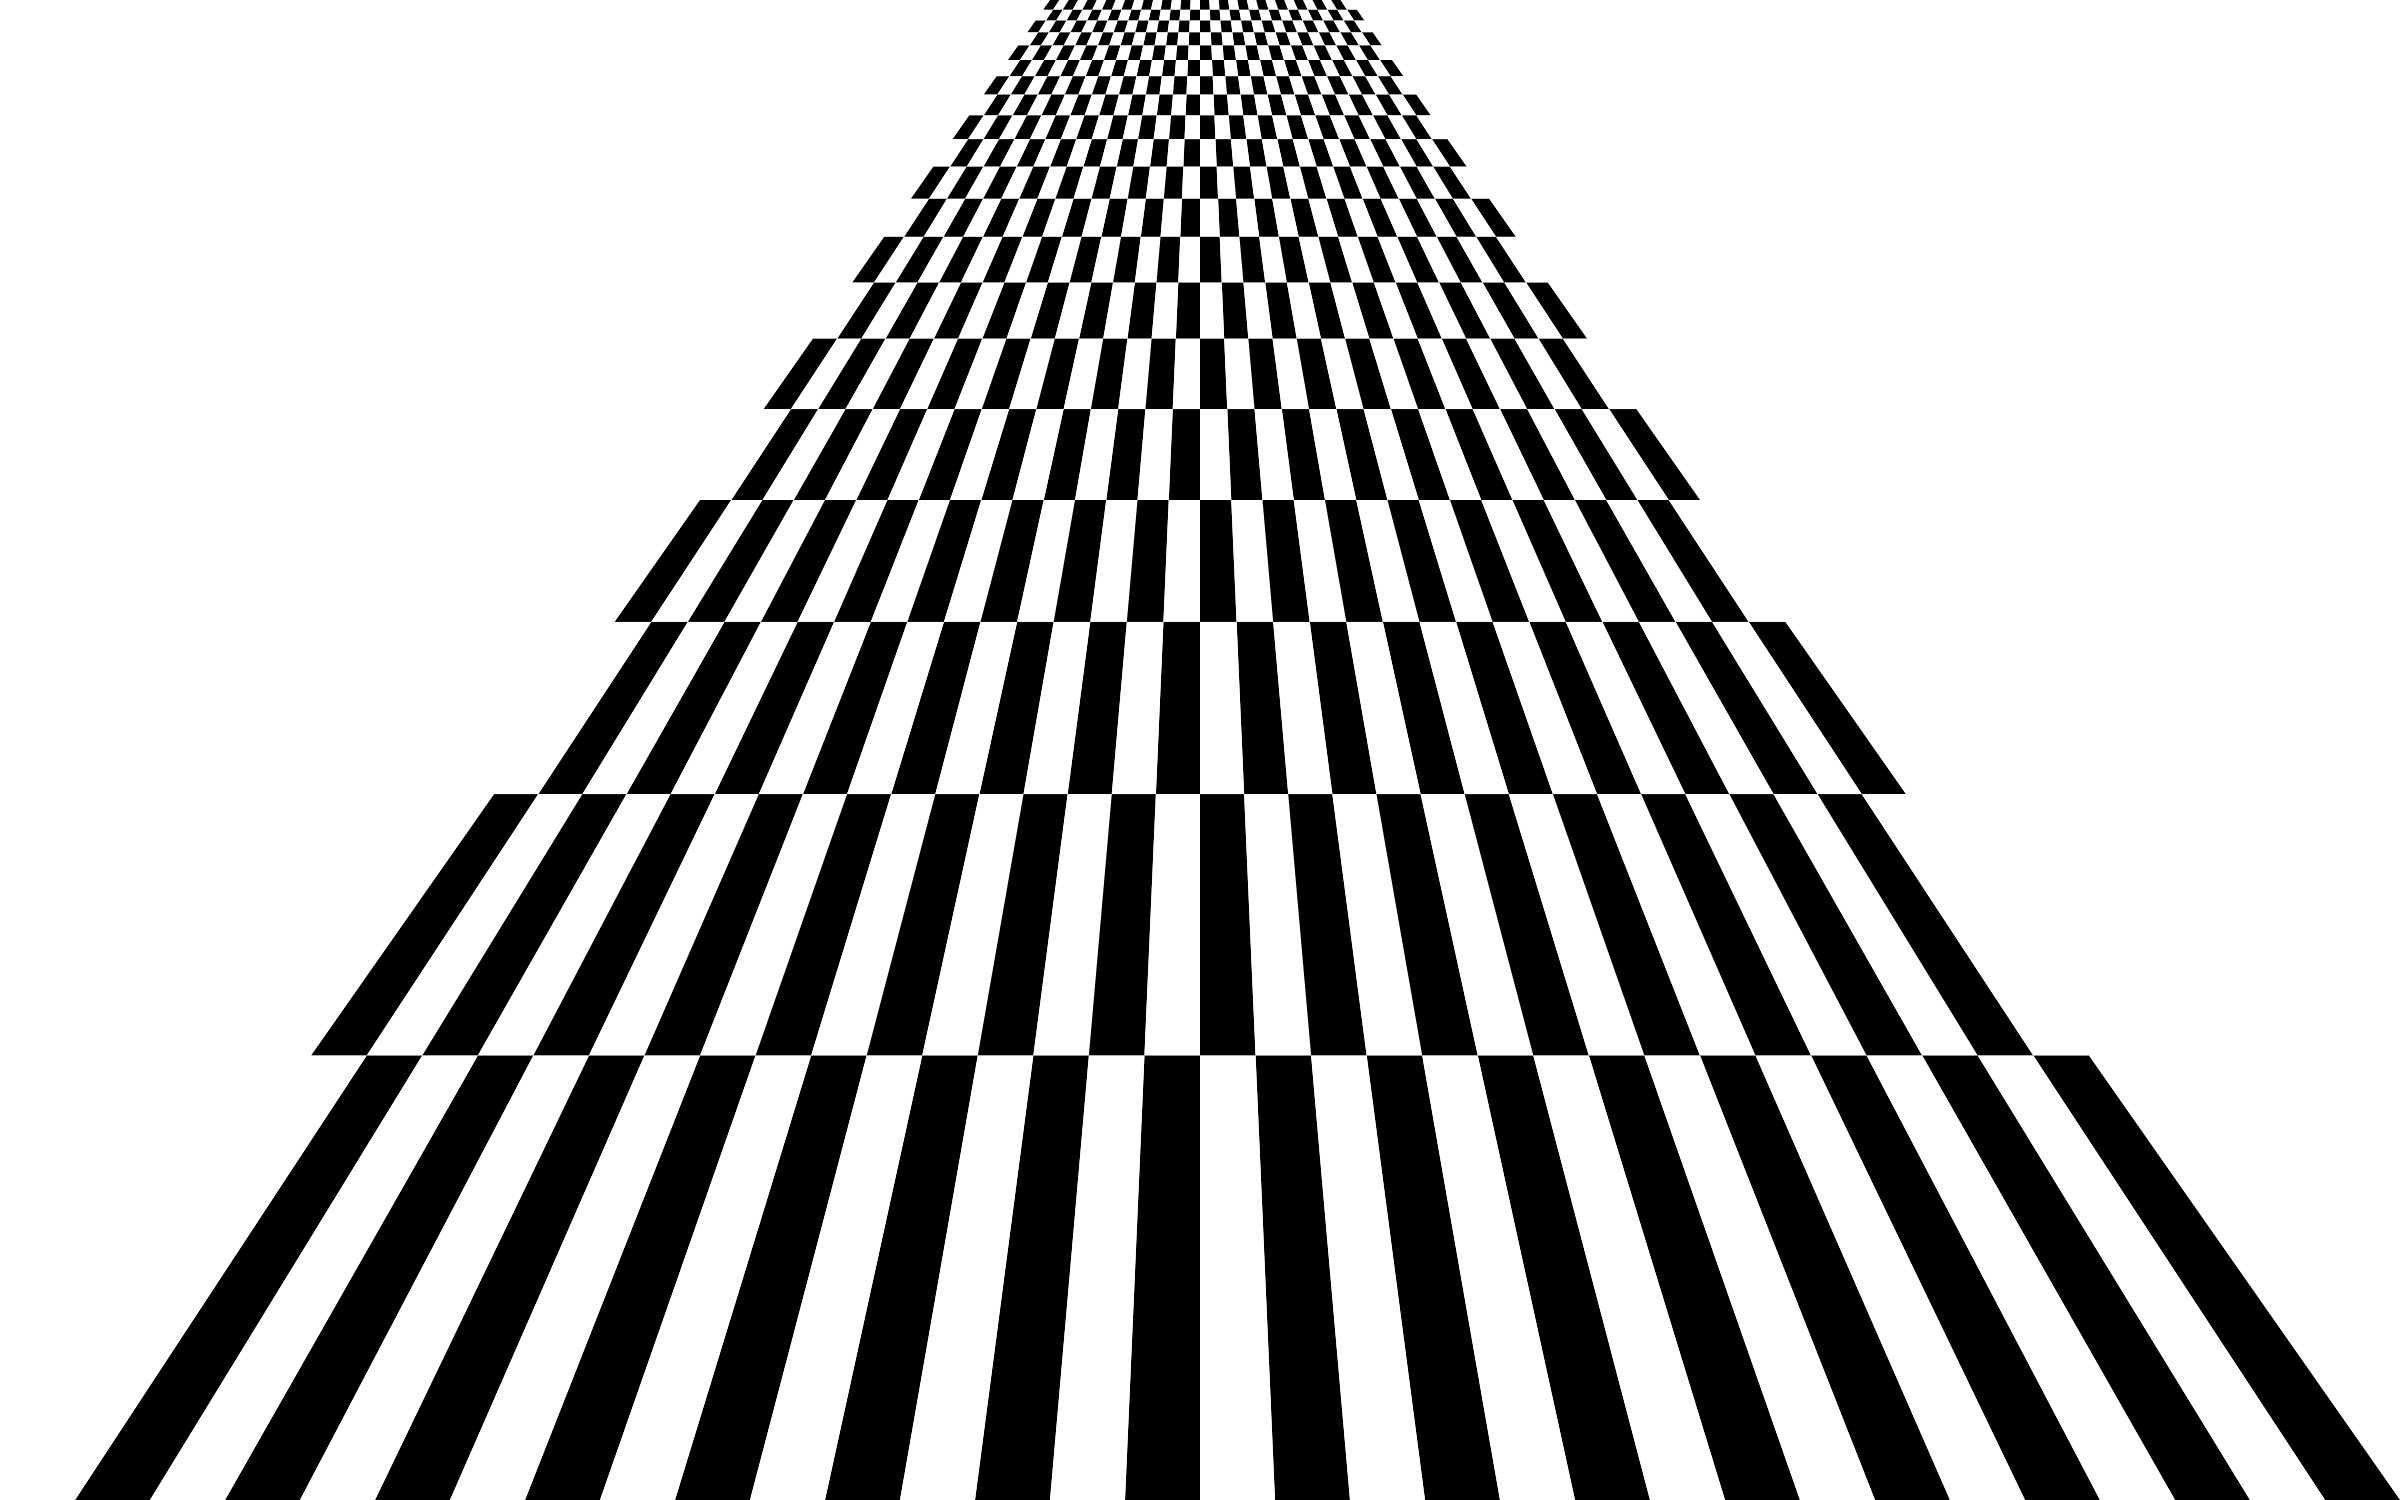 Checkerboard perspective icons png. Prespective drawing skyscraper png free stock